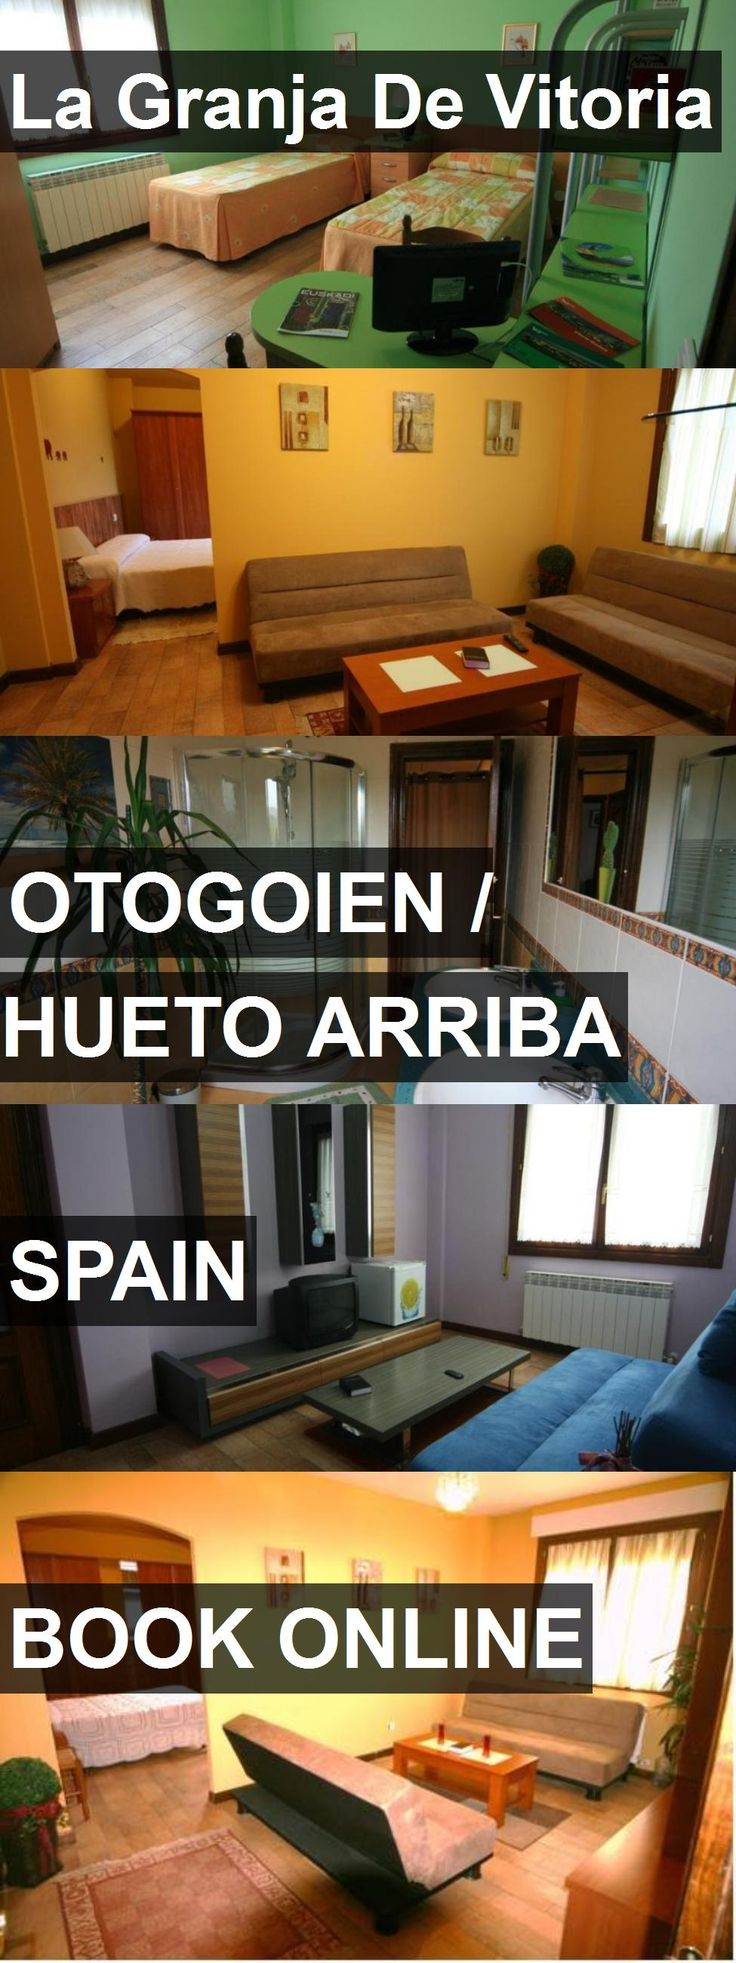 Hotel La Granja De Vitoria in Otogoien / Hueto Arriba, Spain. For more information, photos, reviews and best prices please follow the link. #Spain #Otogoien/HuetoArriba #LaGranjaDeVitoria #hotel #travel #vacation